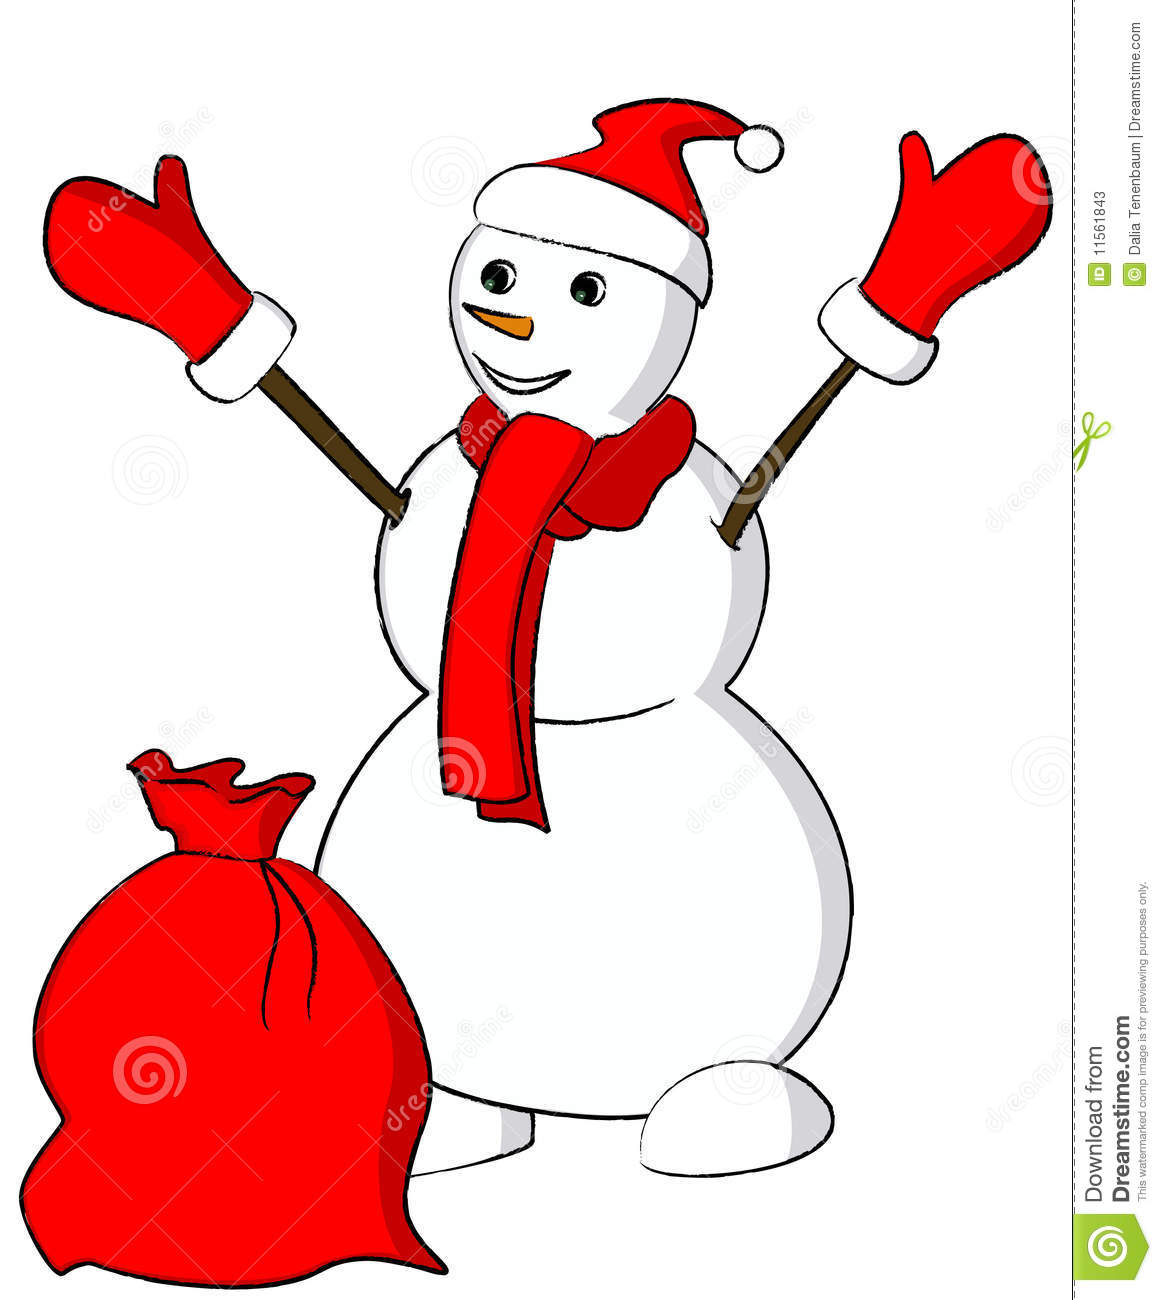 Snowman Scarf Outline Snowman with red scarf and a sack